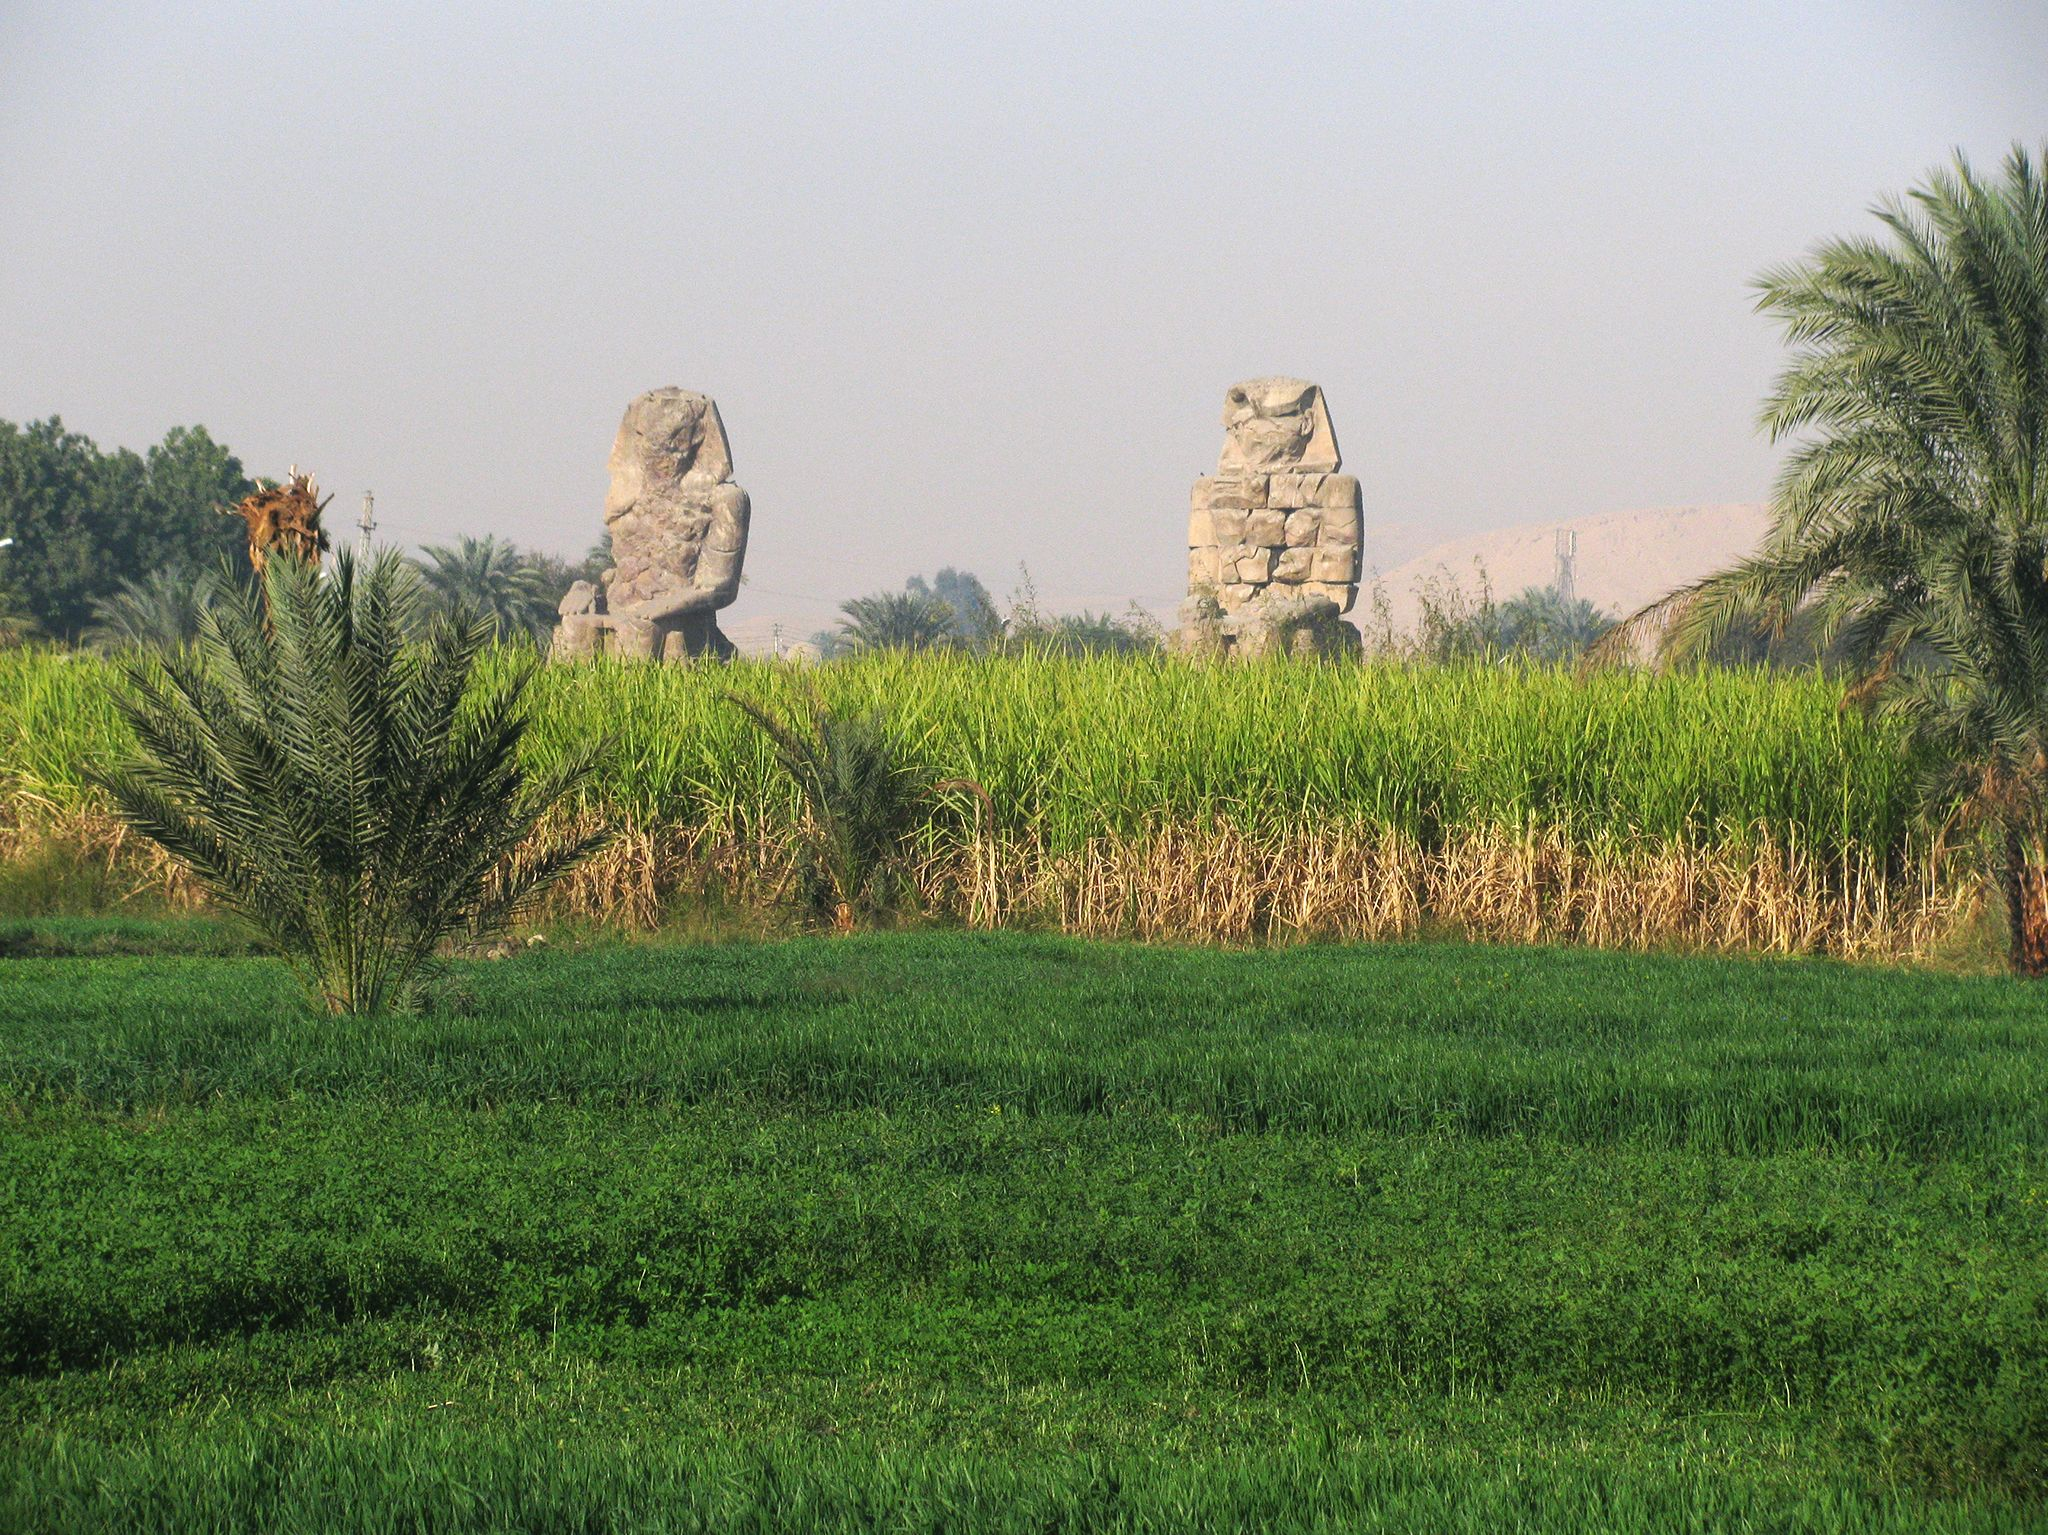 The so-called Colossi of Memnon surrounded by fields. Until recently they were all that remained... [Photo of the day - April 2019]